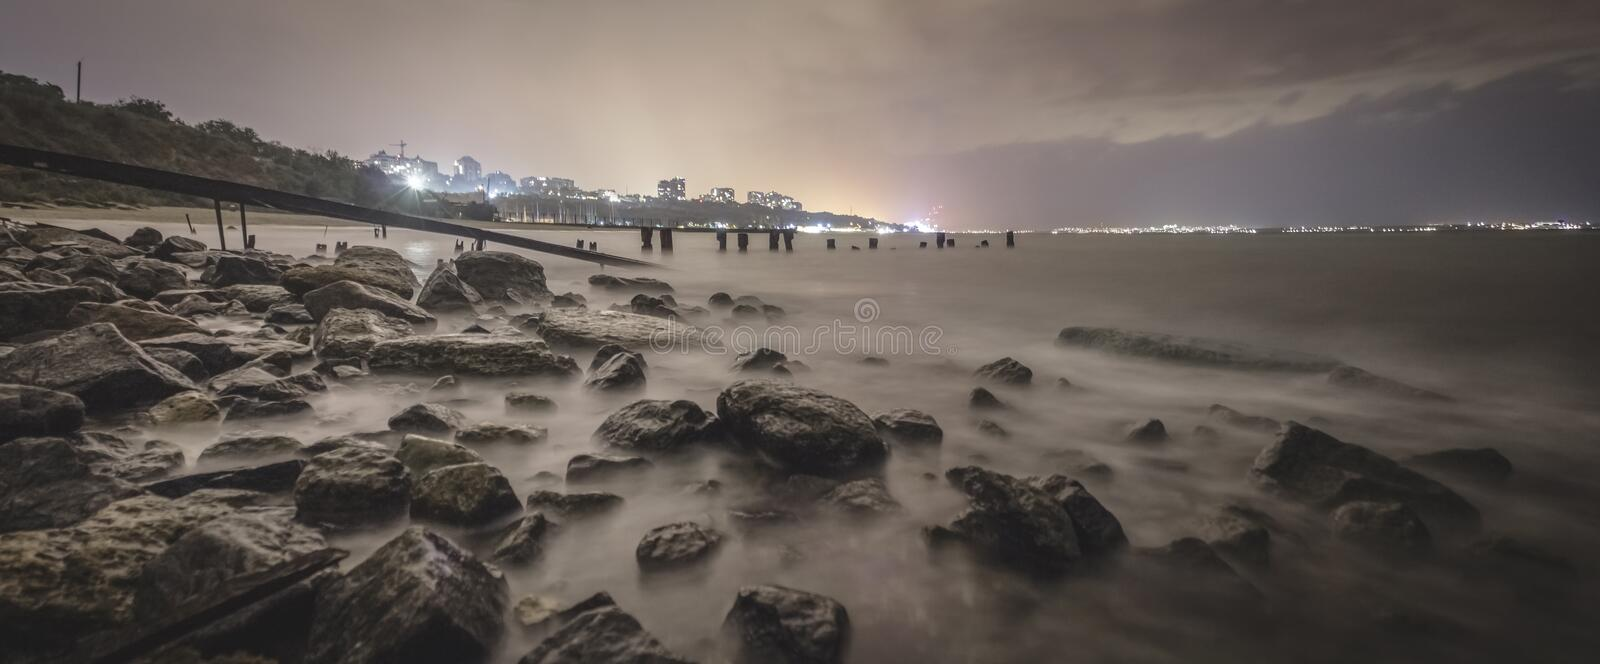 Long exposure of a stunning rocky beach in Odessa at dusk. royalty free stock image